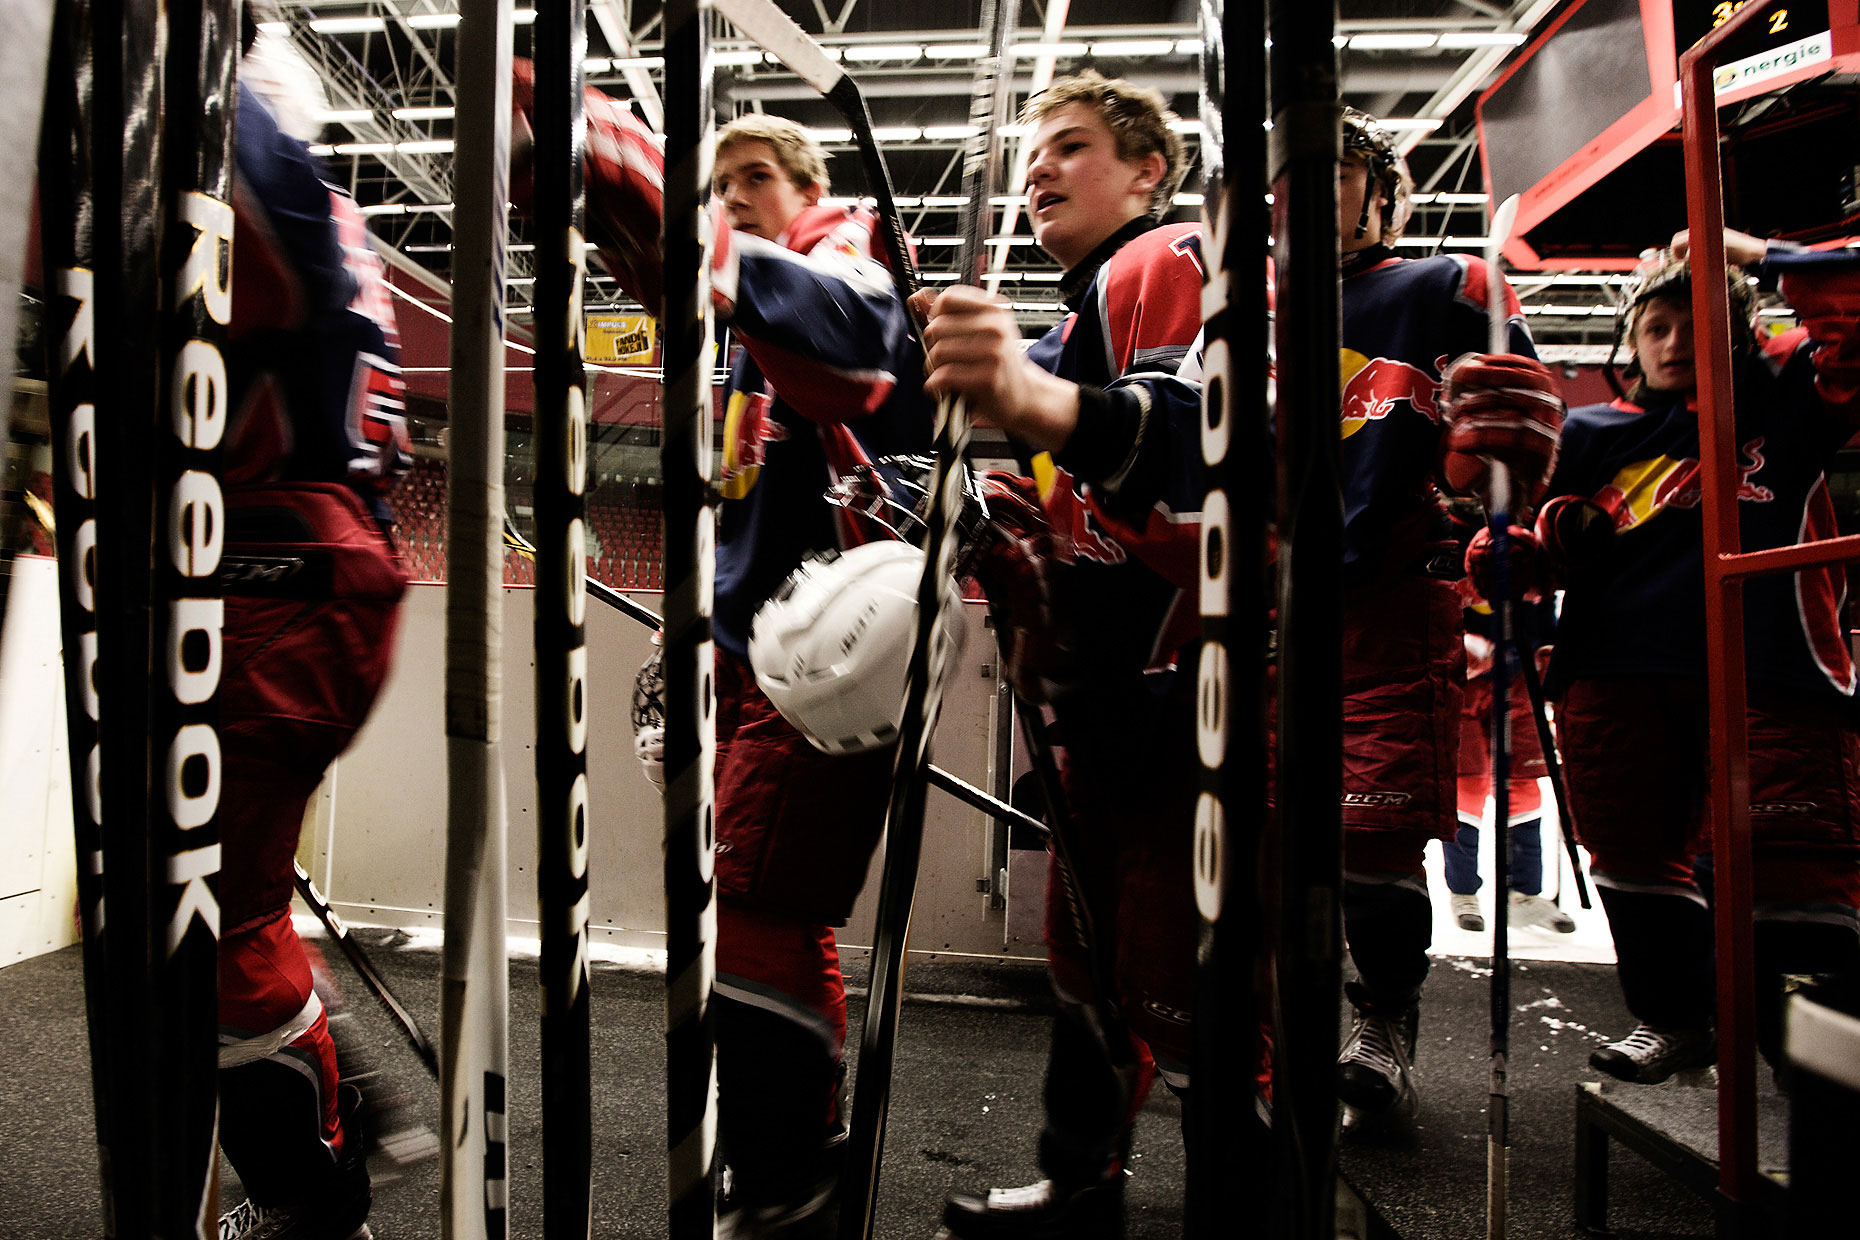 Red Bull Ice hockey